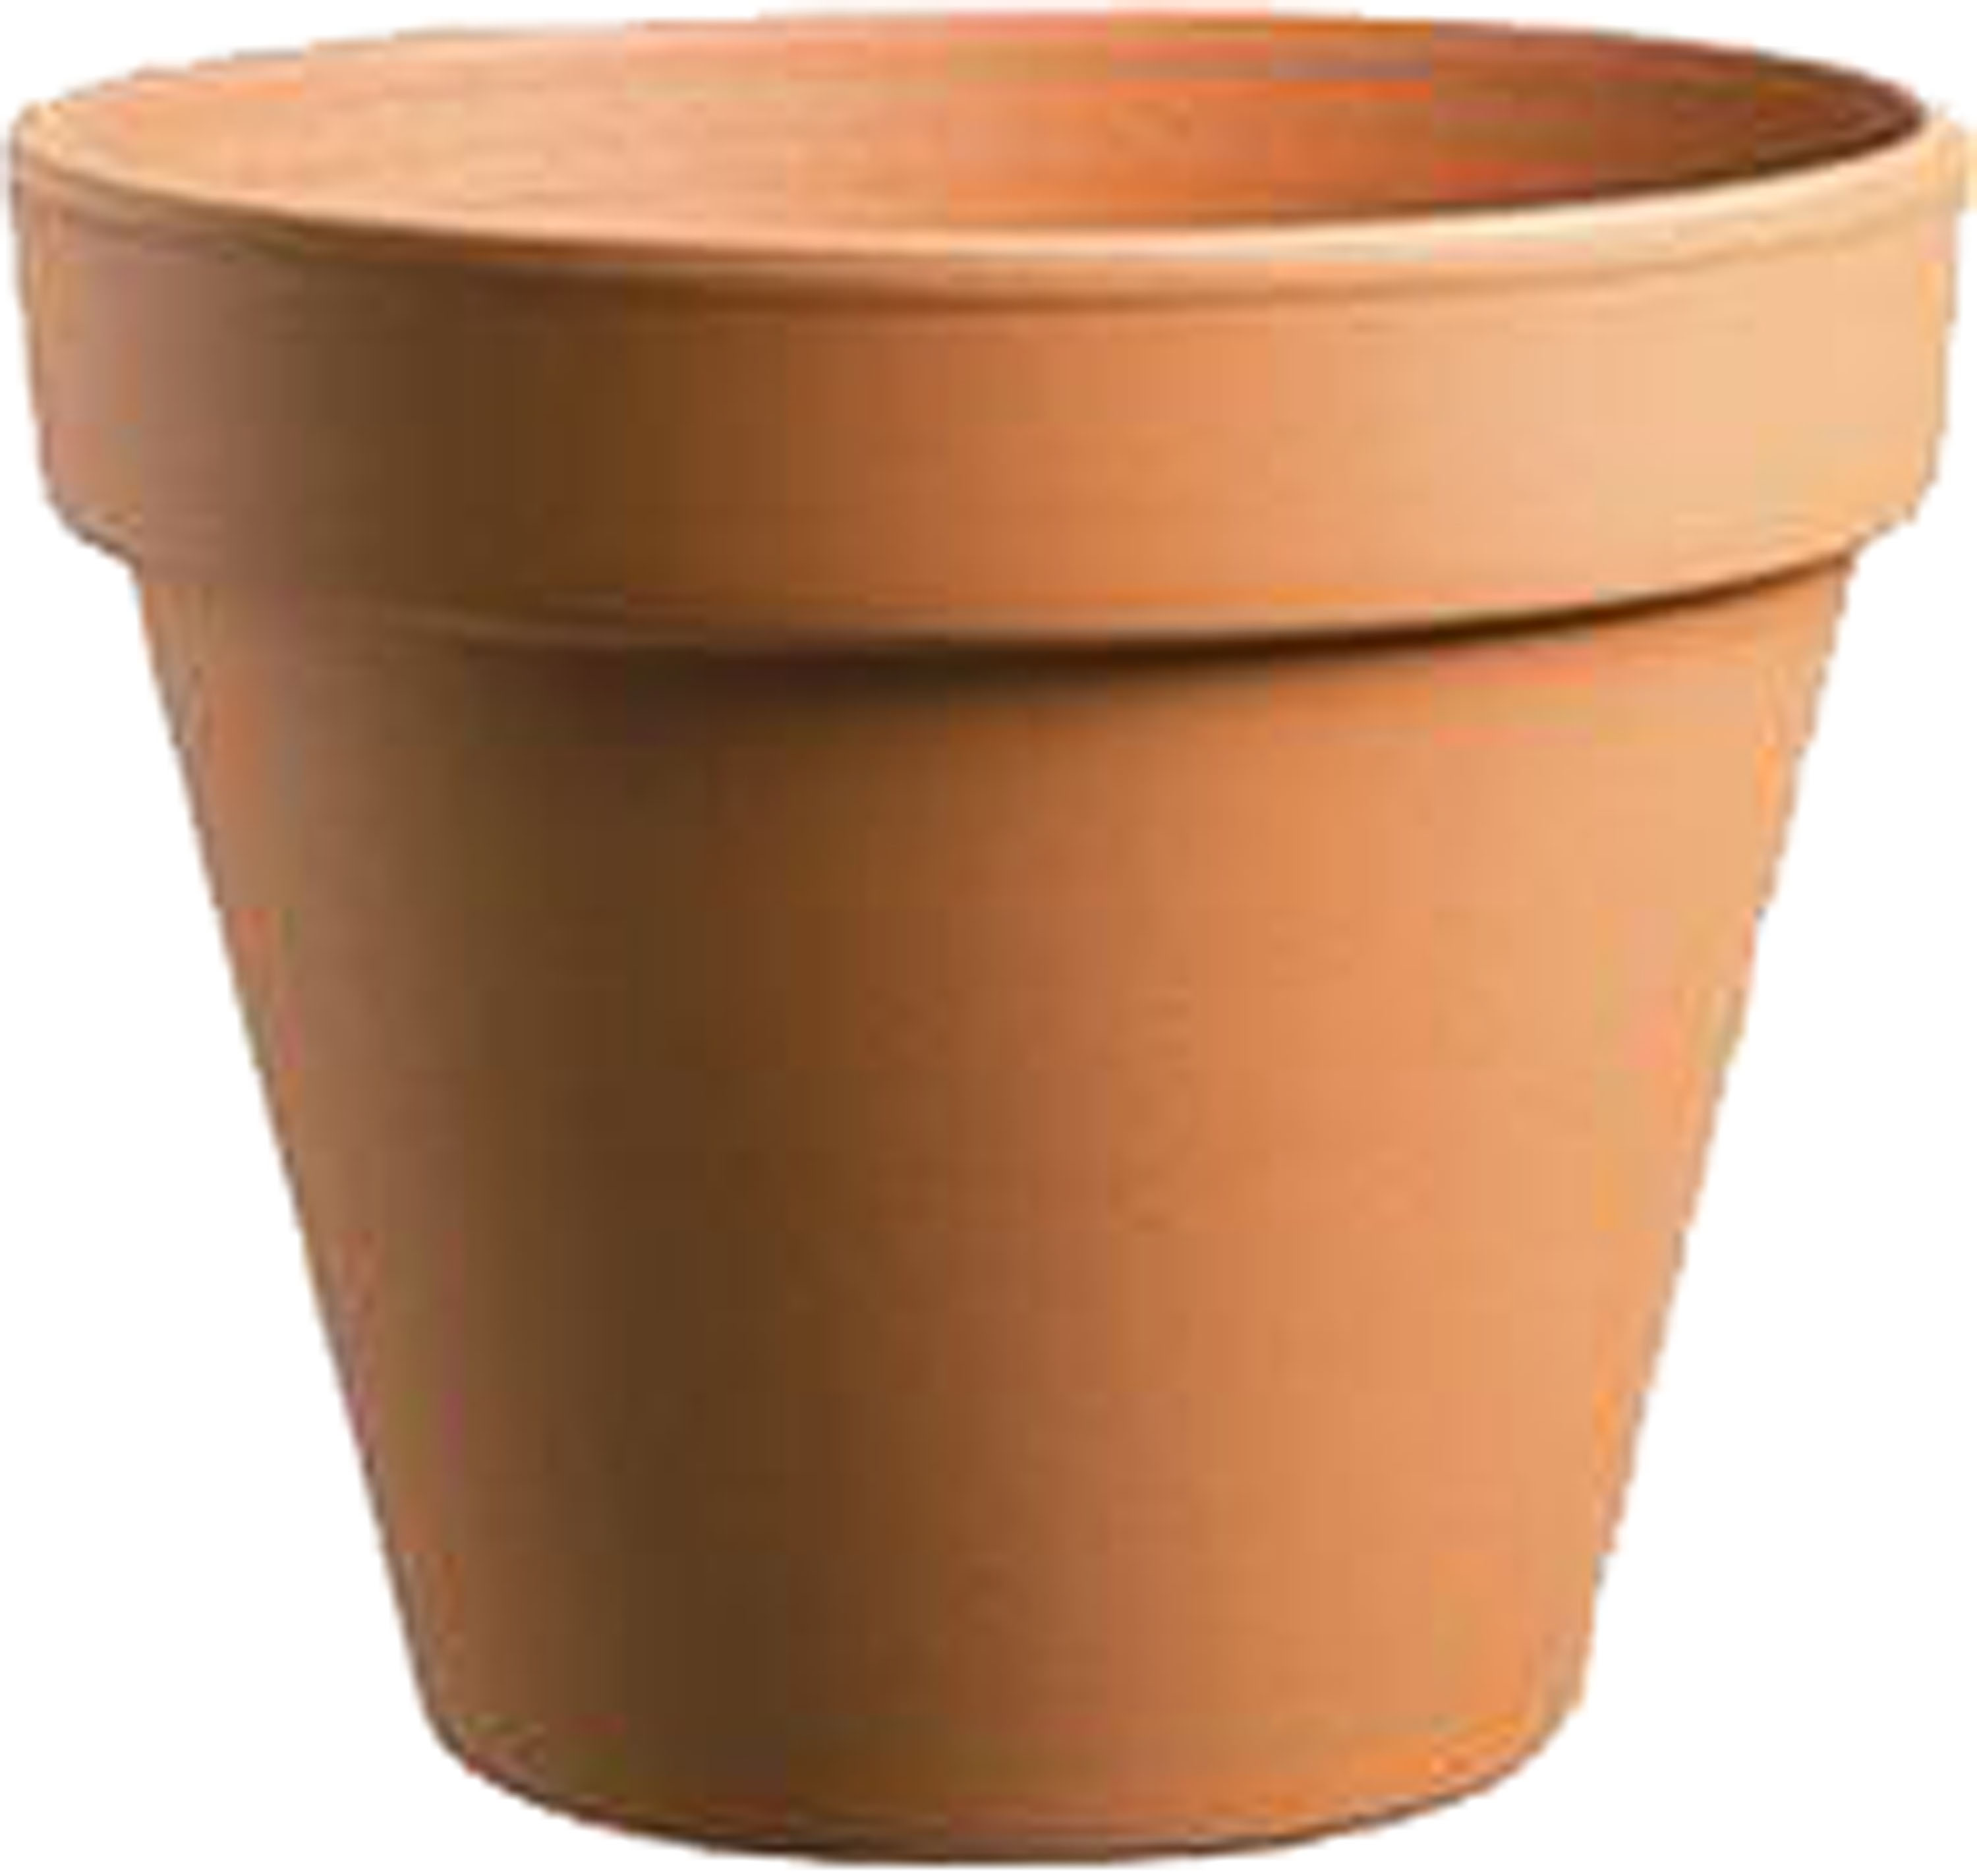 Southern Patio-Standard Clay Pot- Terra Cotta 8 Inch (Case of 12 )